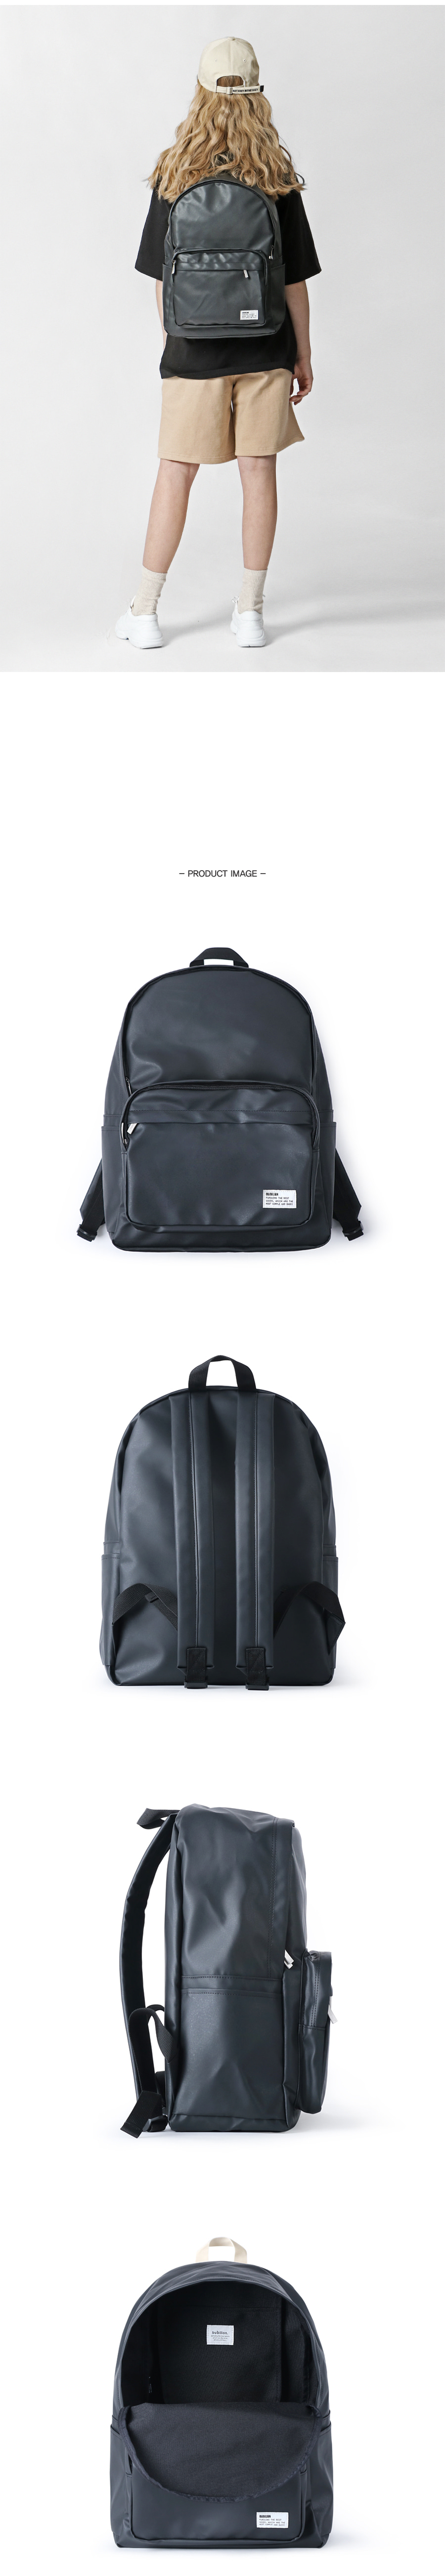 [키홀더 포함] Bubilian Water Proof Backpack_[Black]